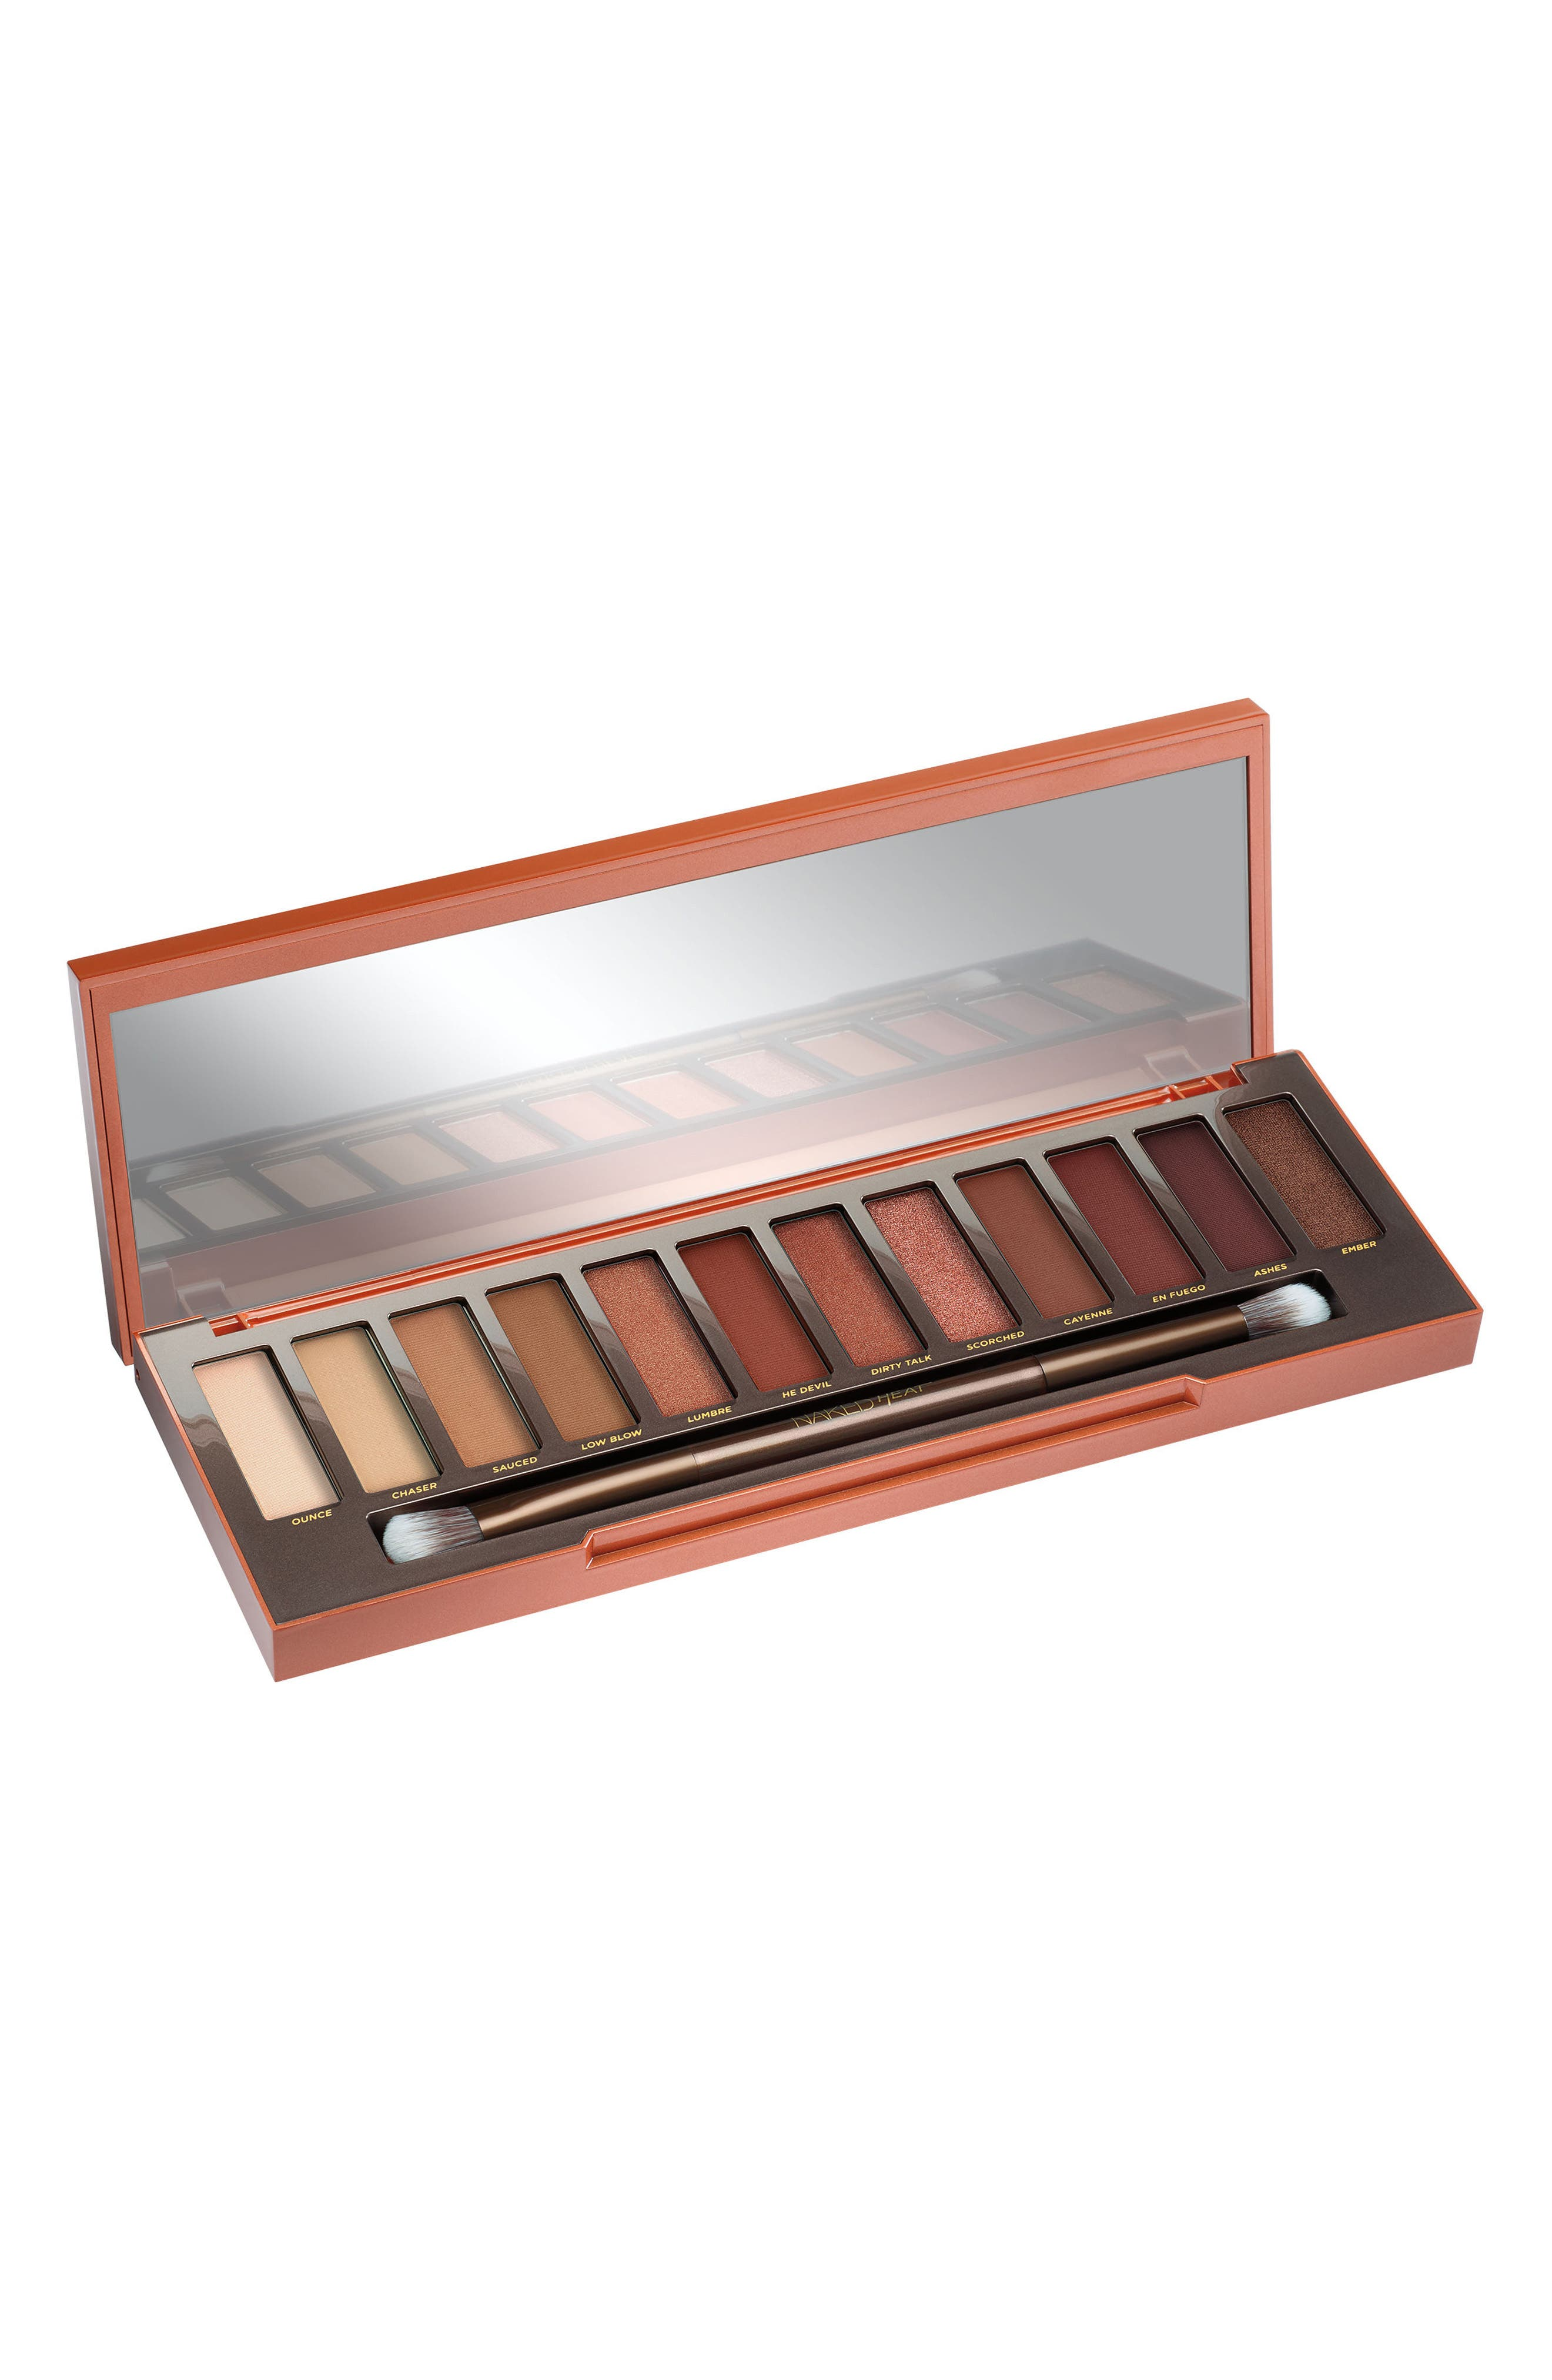 Main Image - Urban Decay Naked Heat Palette